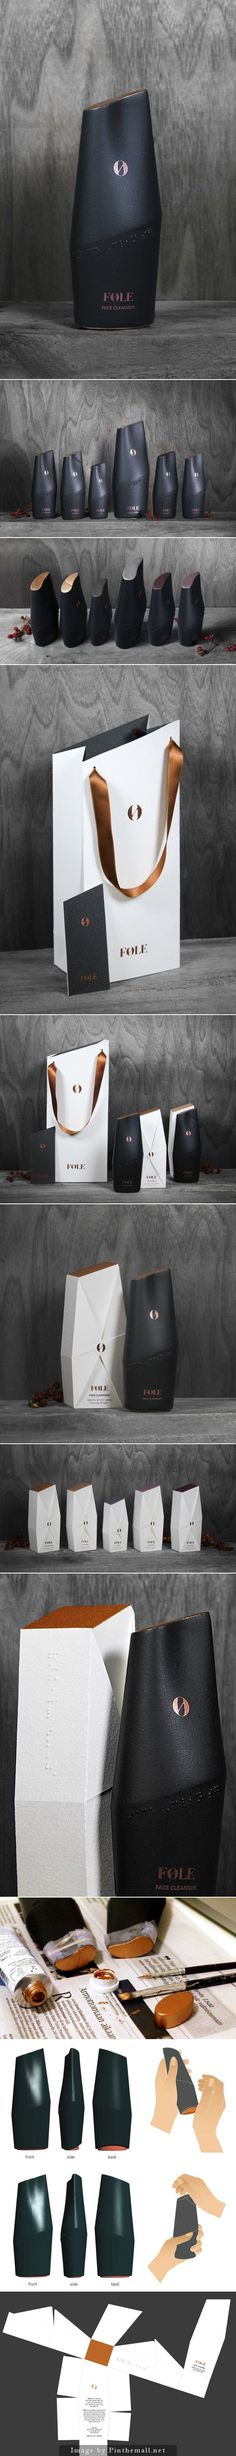 FØLE | I love this organic, luxurious skin care product line | #packaging design by Saana Hellsten